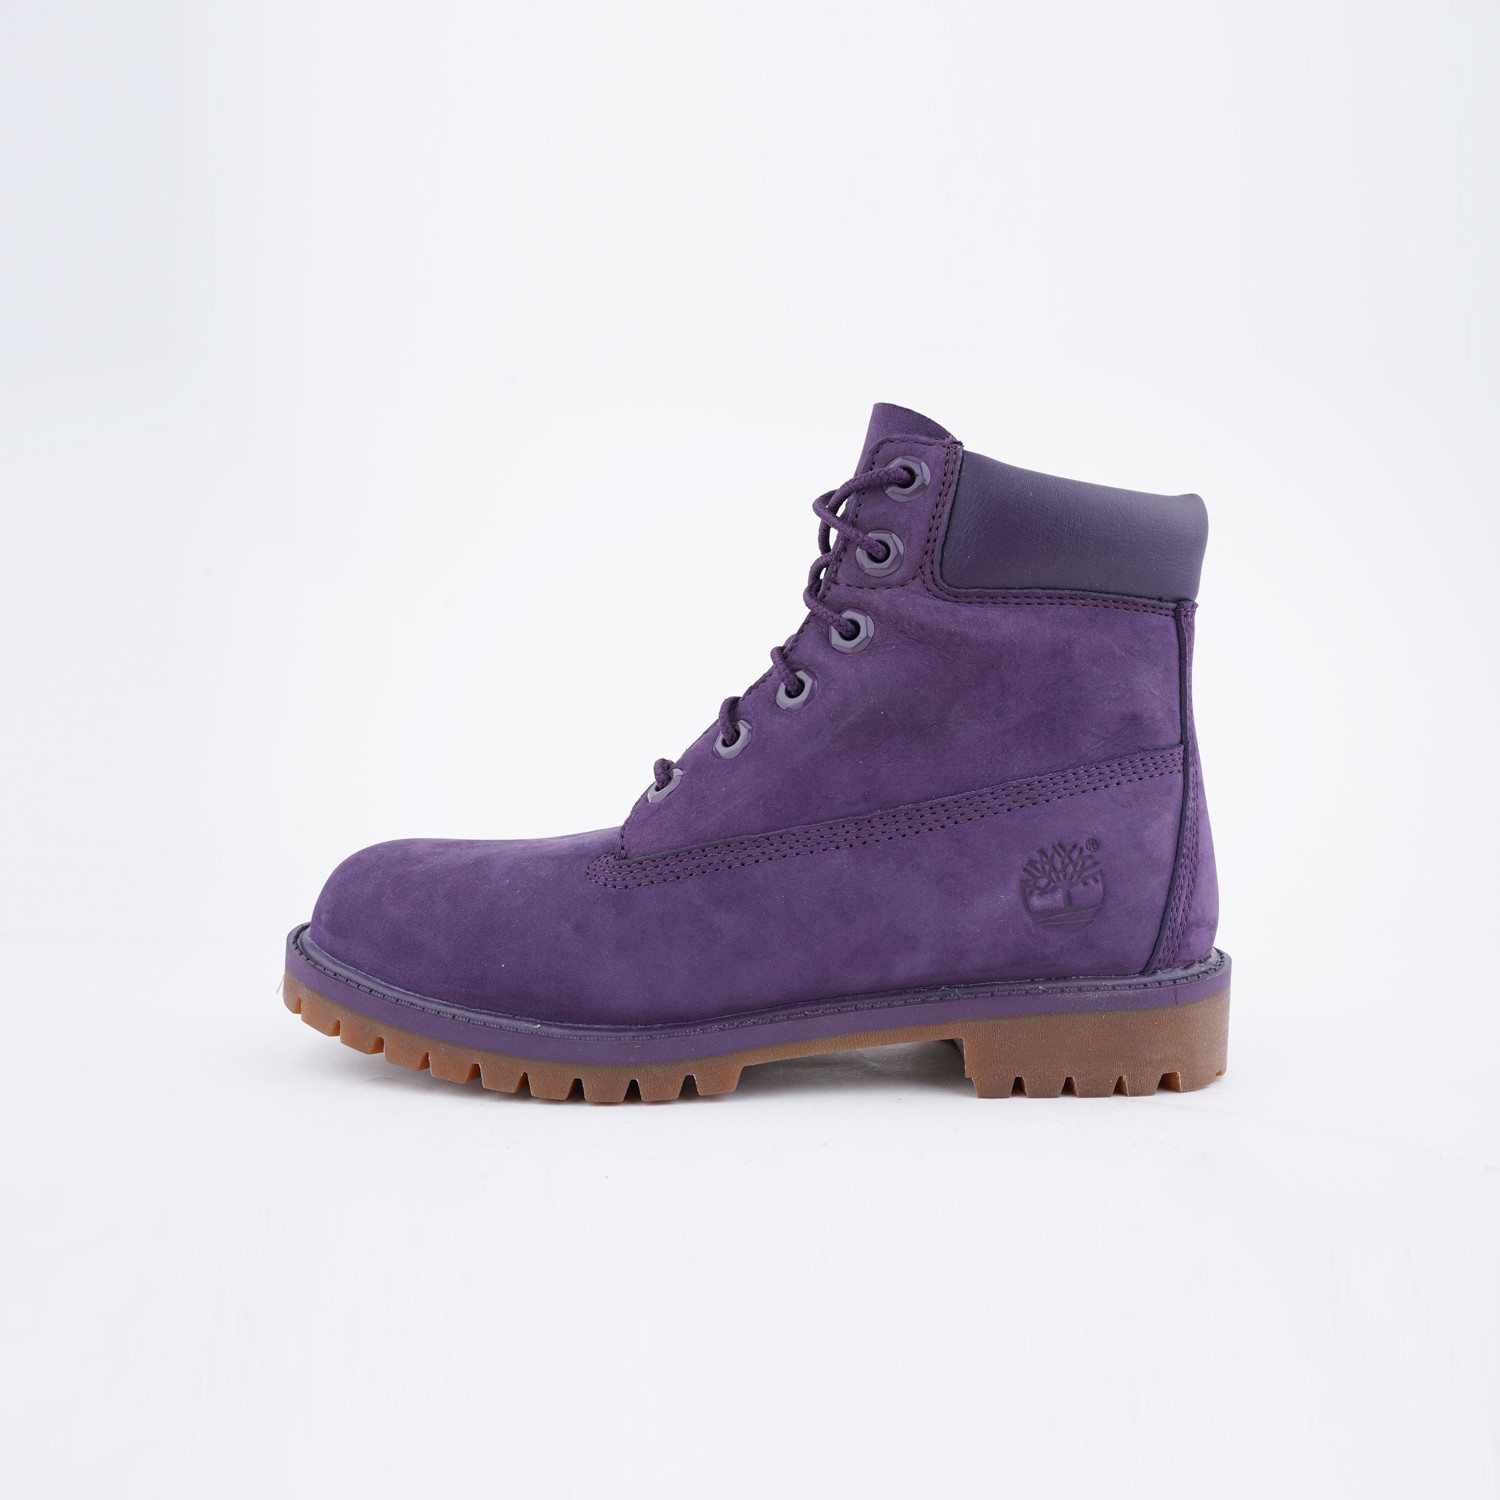 Timberland 6 In Premium Wp Boot Purple (1080031570_3149)